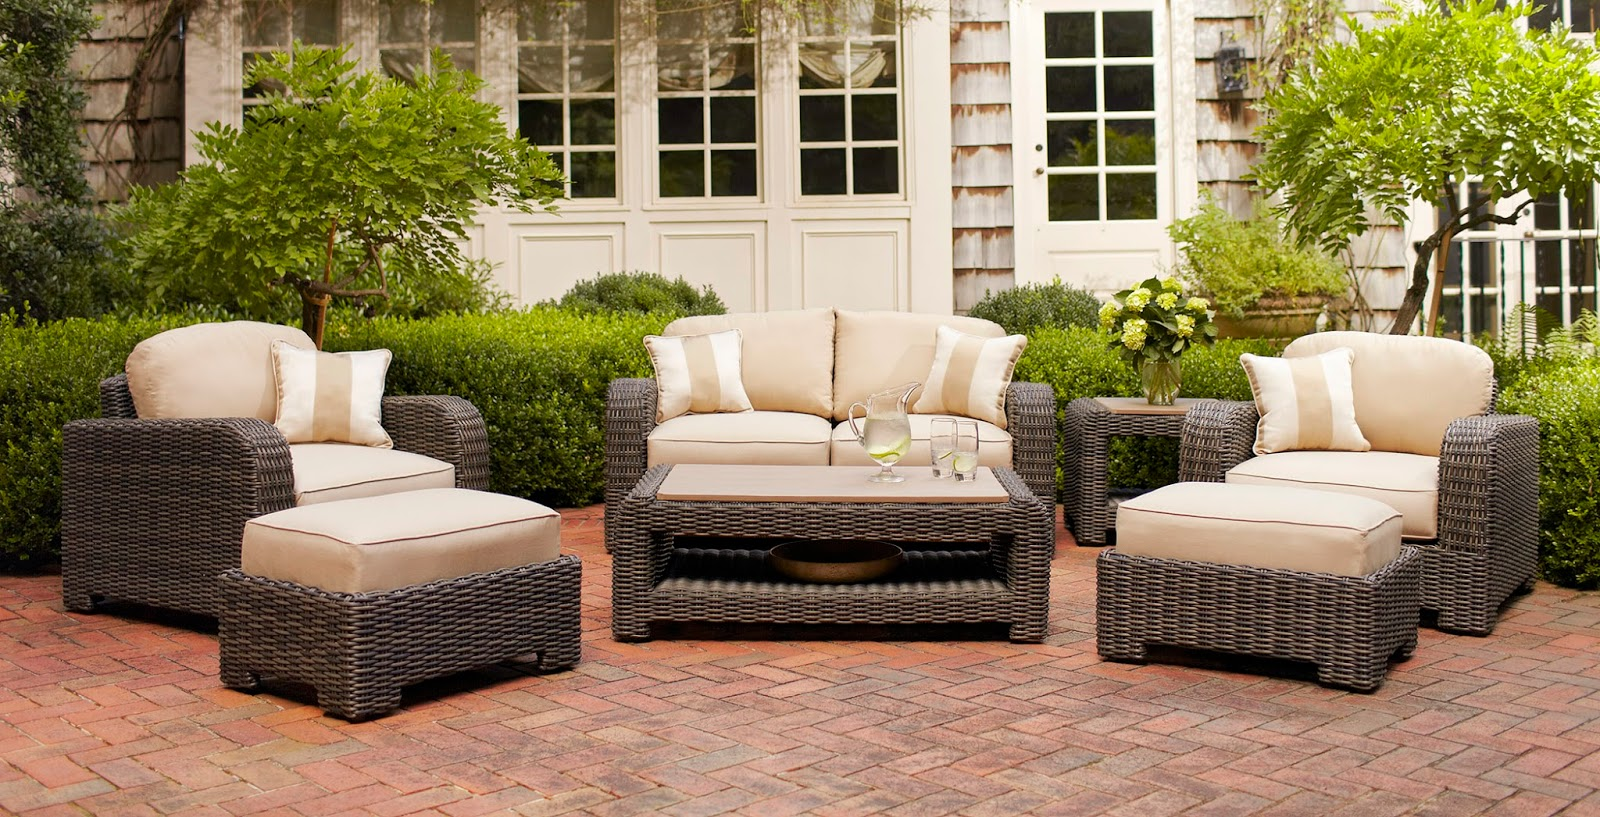 the northshore collection of outdoor lounge seating blends contemporary style with unique texture each piece is made with a weather resistant wicker which brown jordan northshore patio furniture